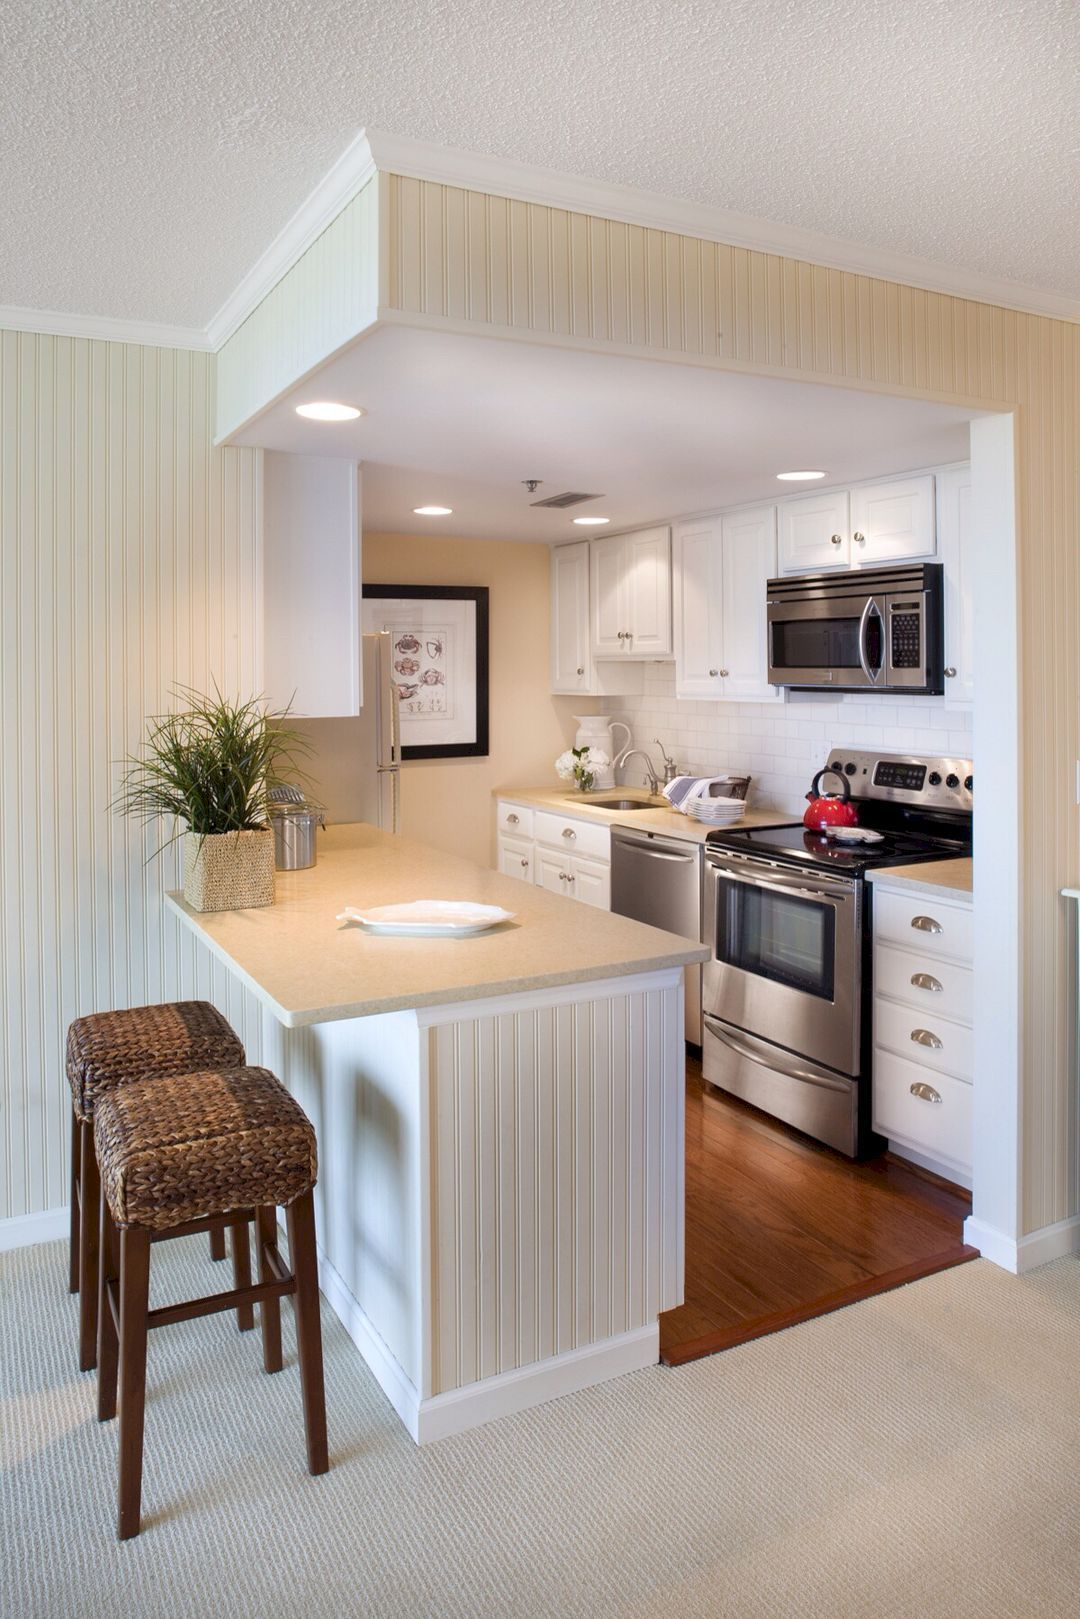 a guide to efficient small kitchen design for apartment small apartment kitchen condo kitchen on kitchen interior small space id=61351